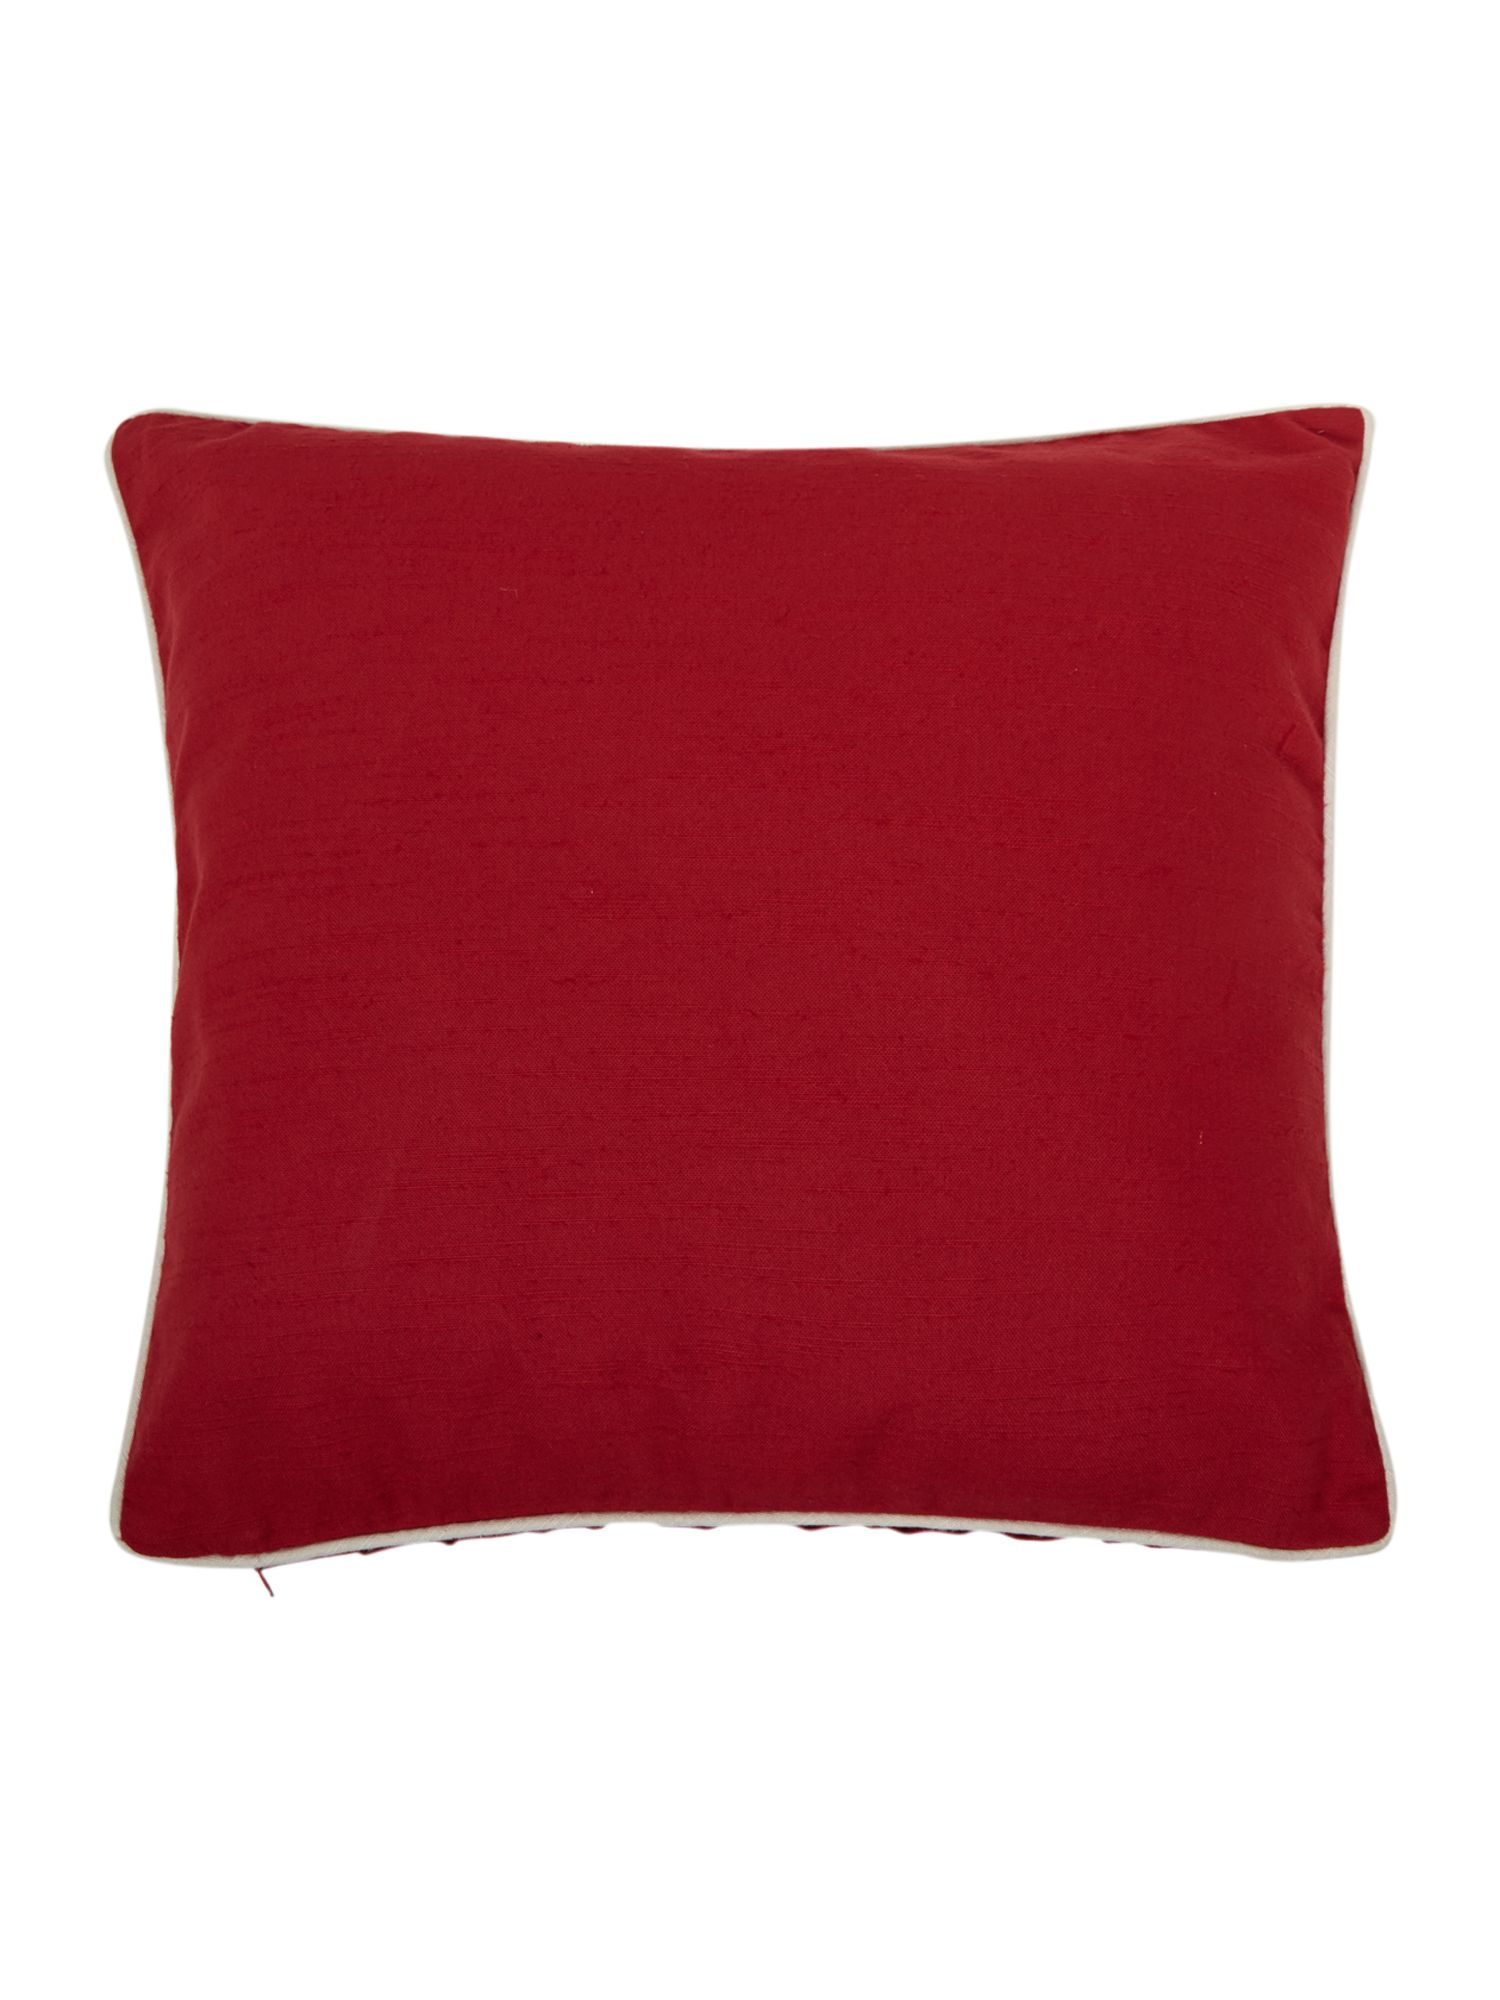 Red cotton cushion with contrast piping